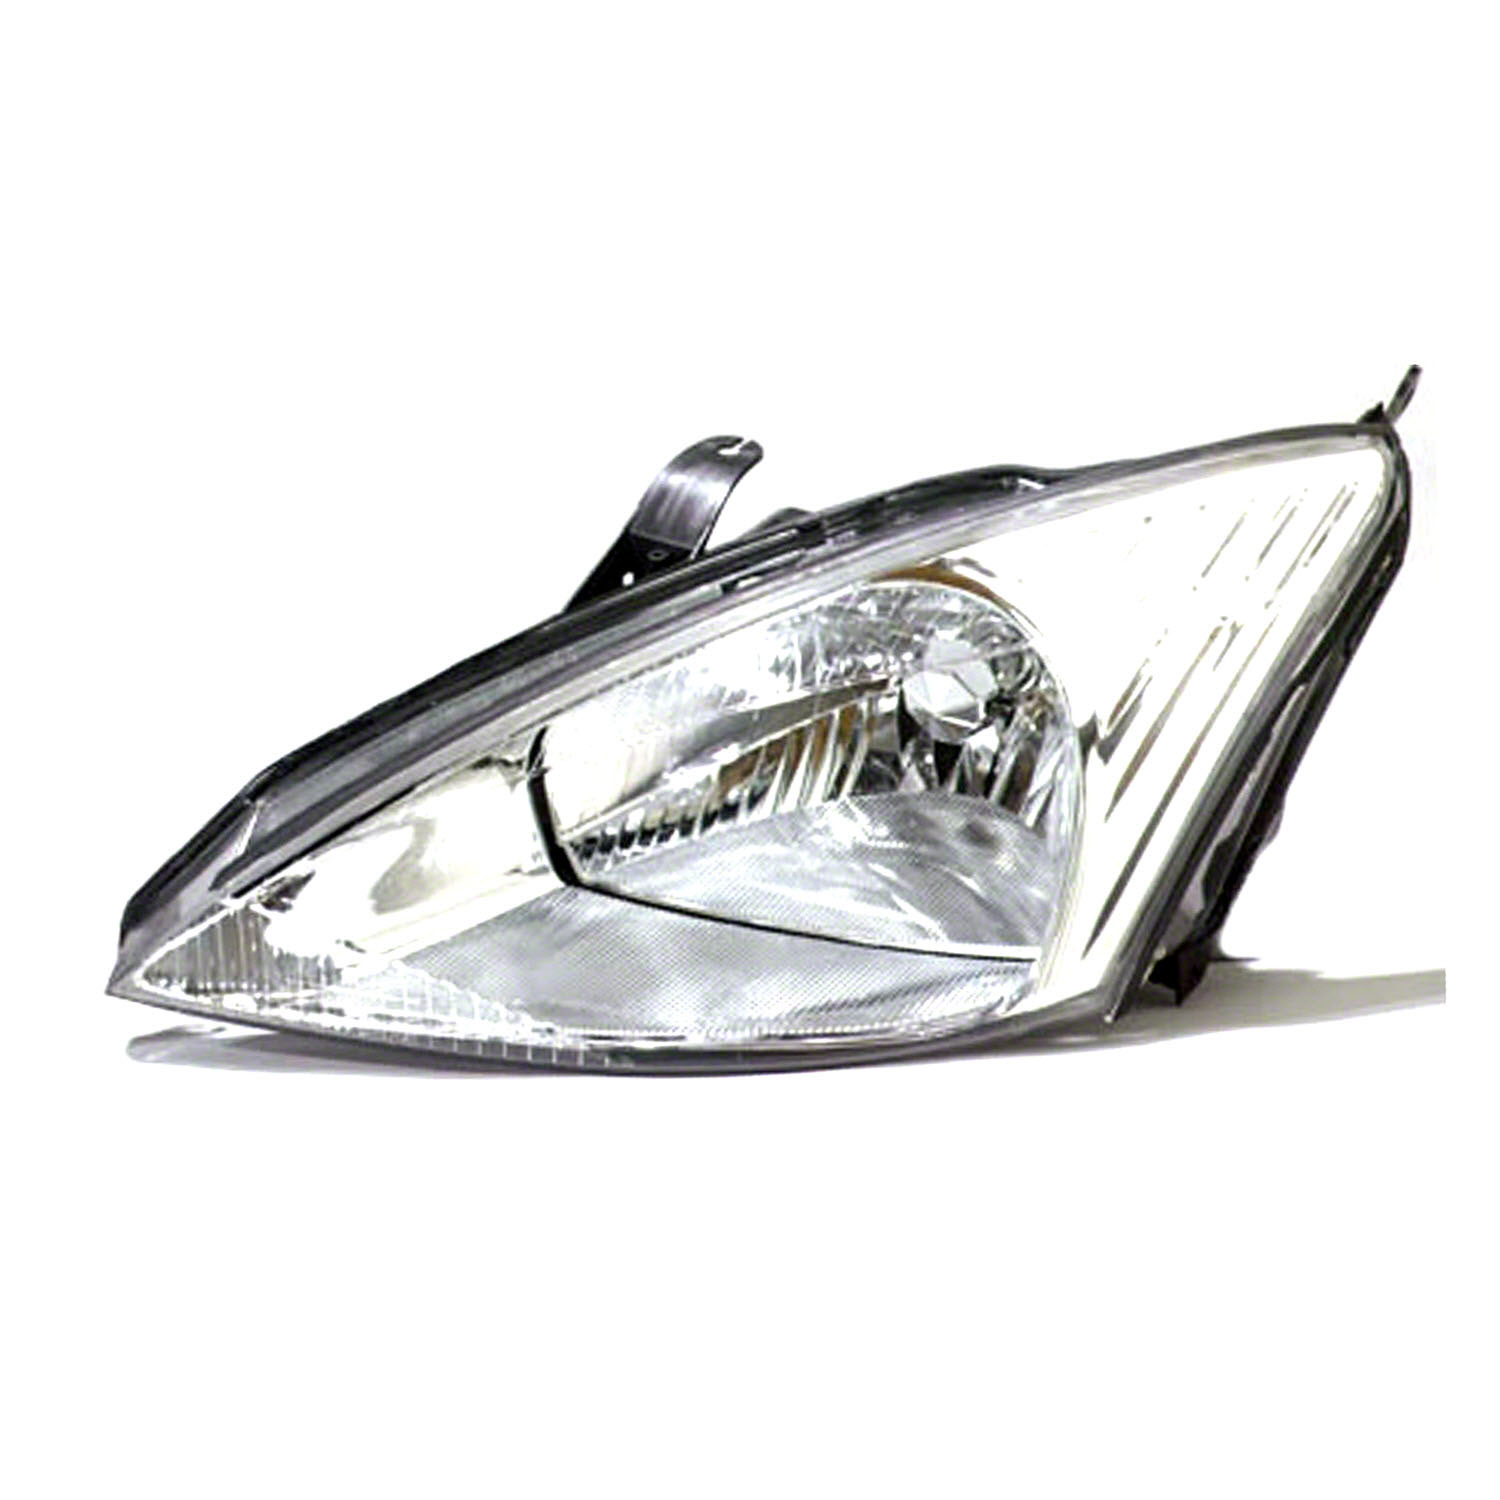 2000-2002 Ford Focus Driver Side Head Lamp W/O HID Lamp